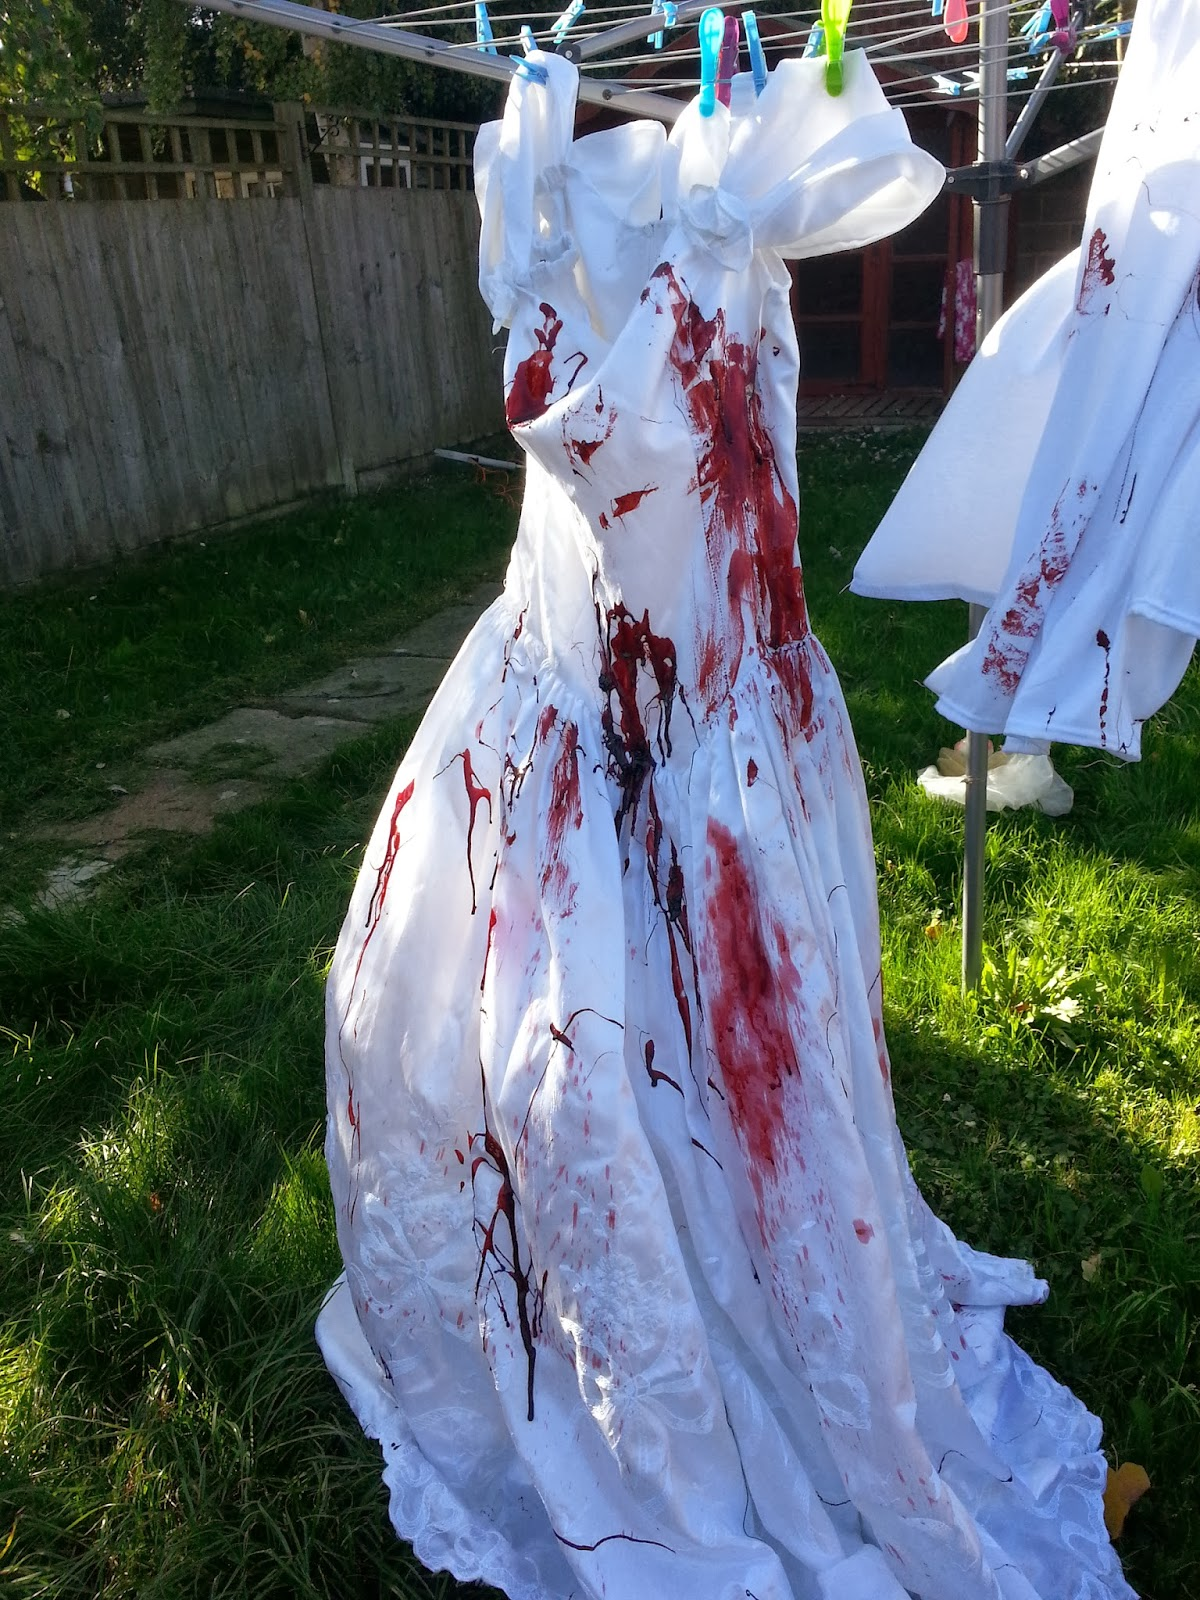 how to make fake blood look real